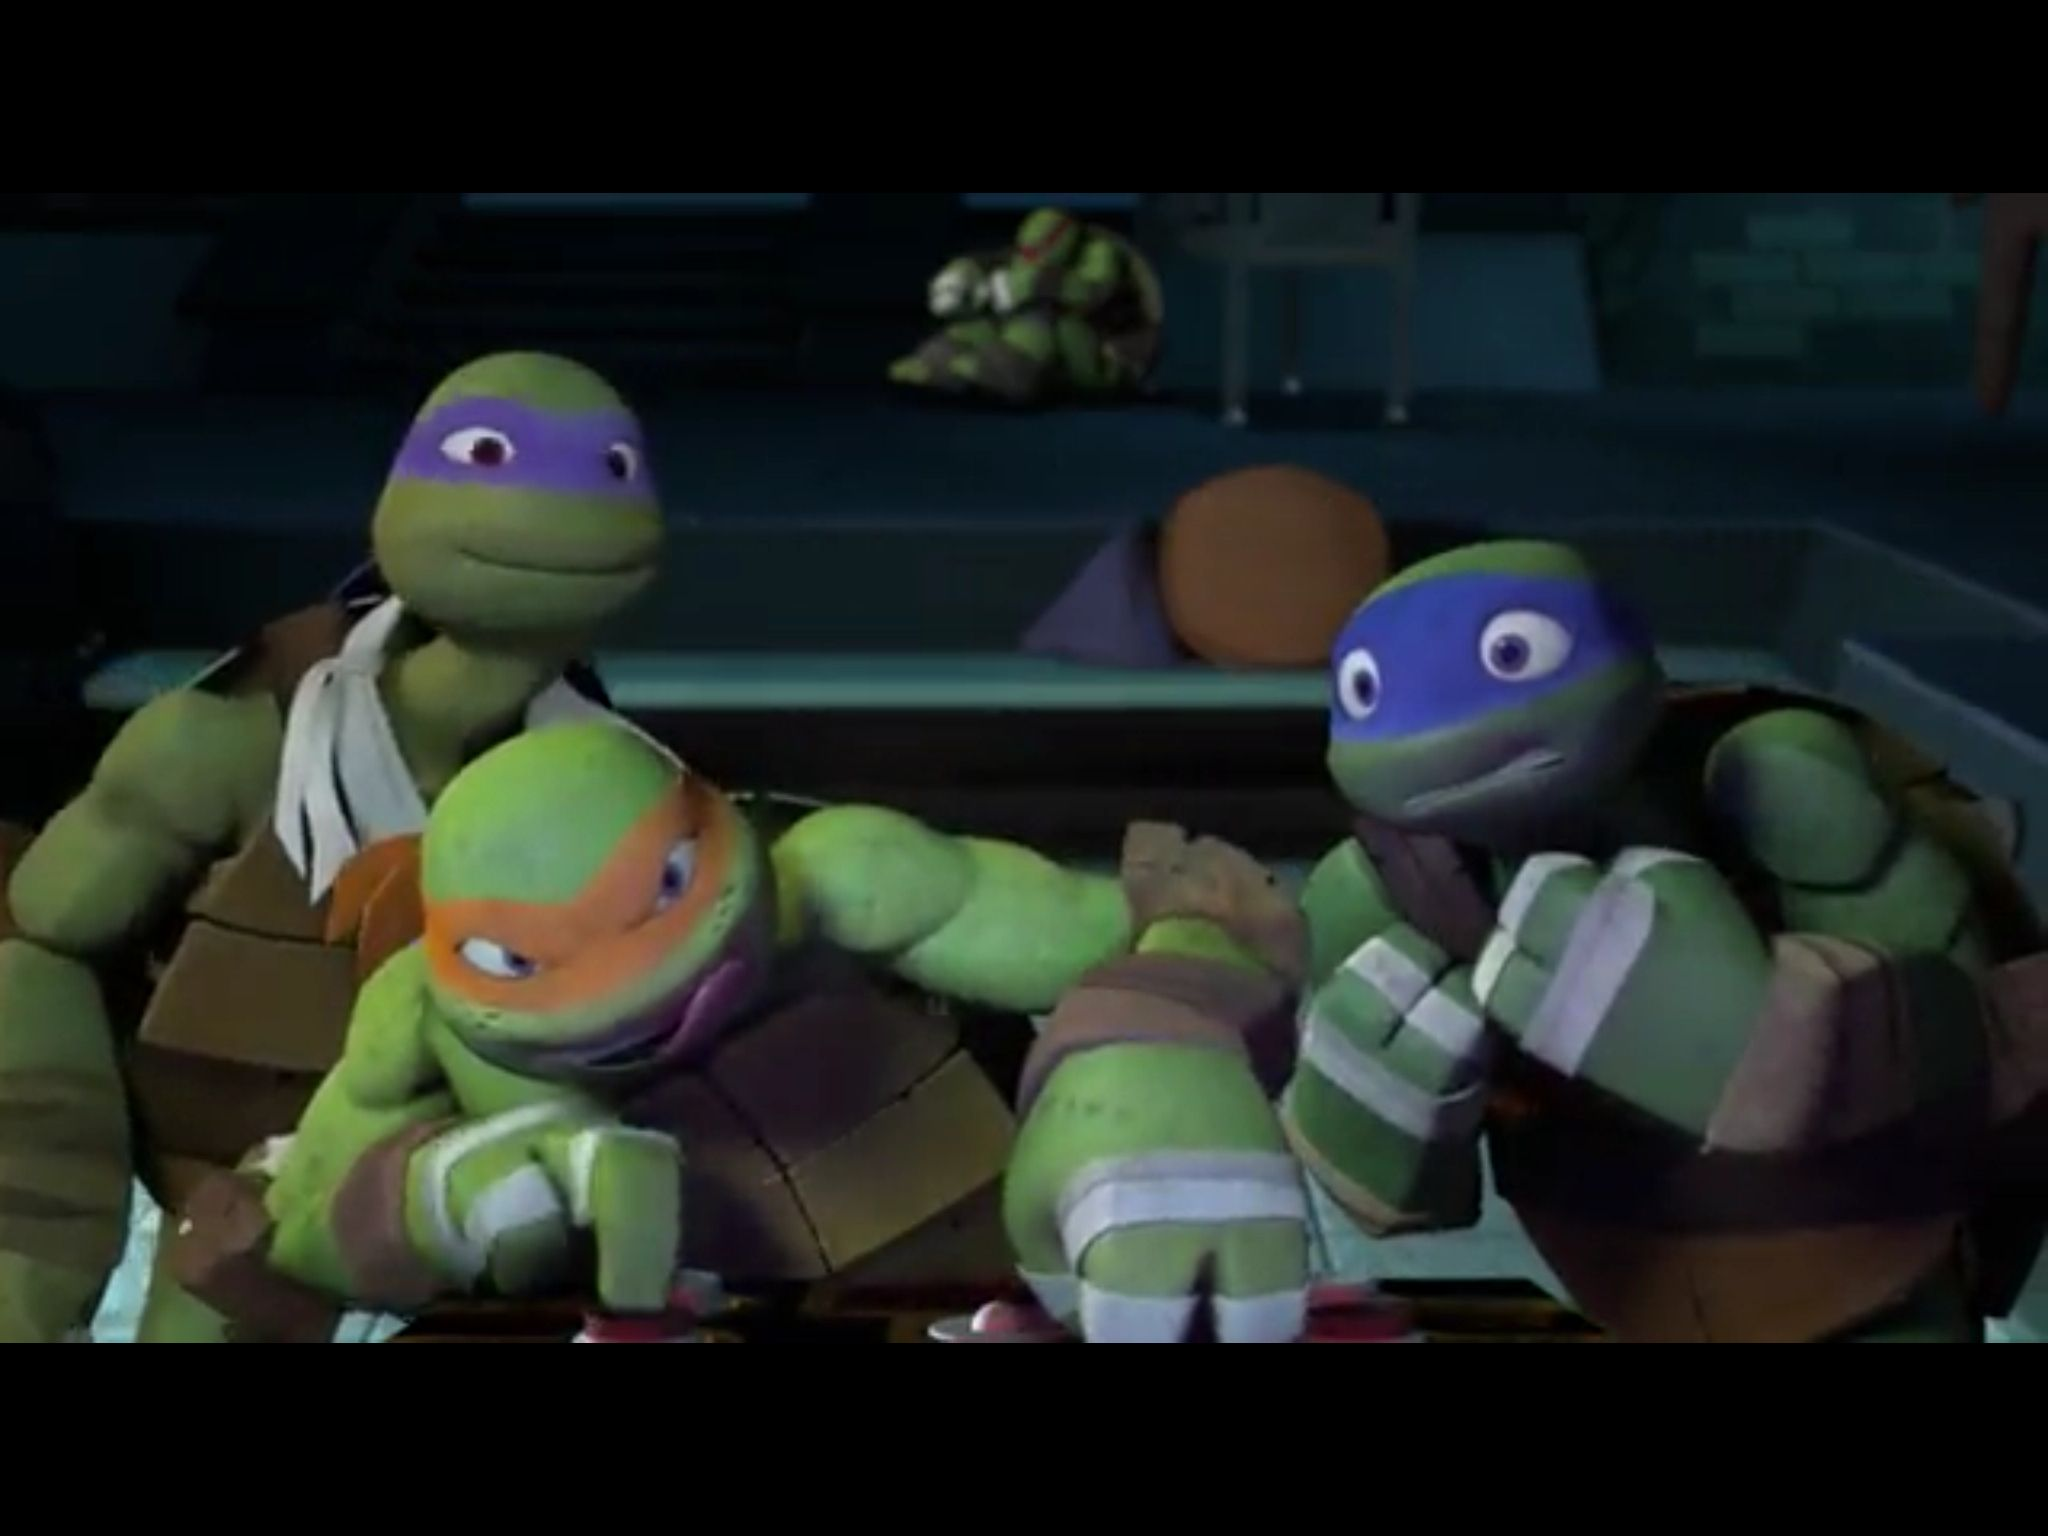 Look at Leo! Mikey has his tongue out! And Donnie's smiling